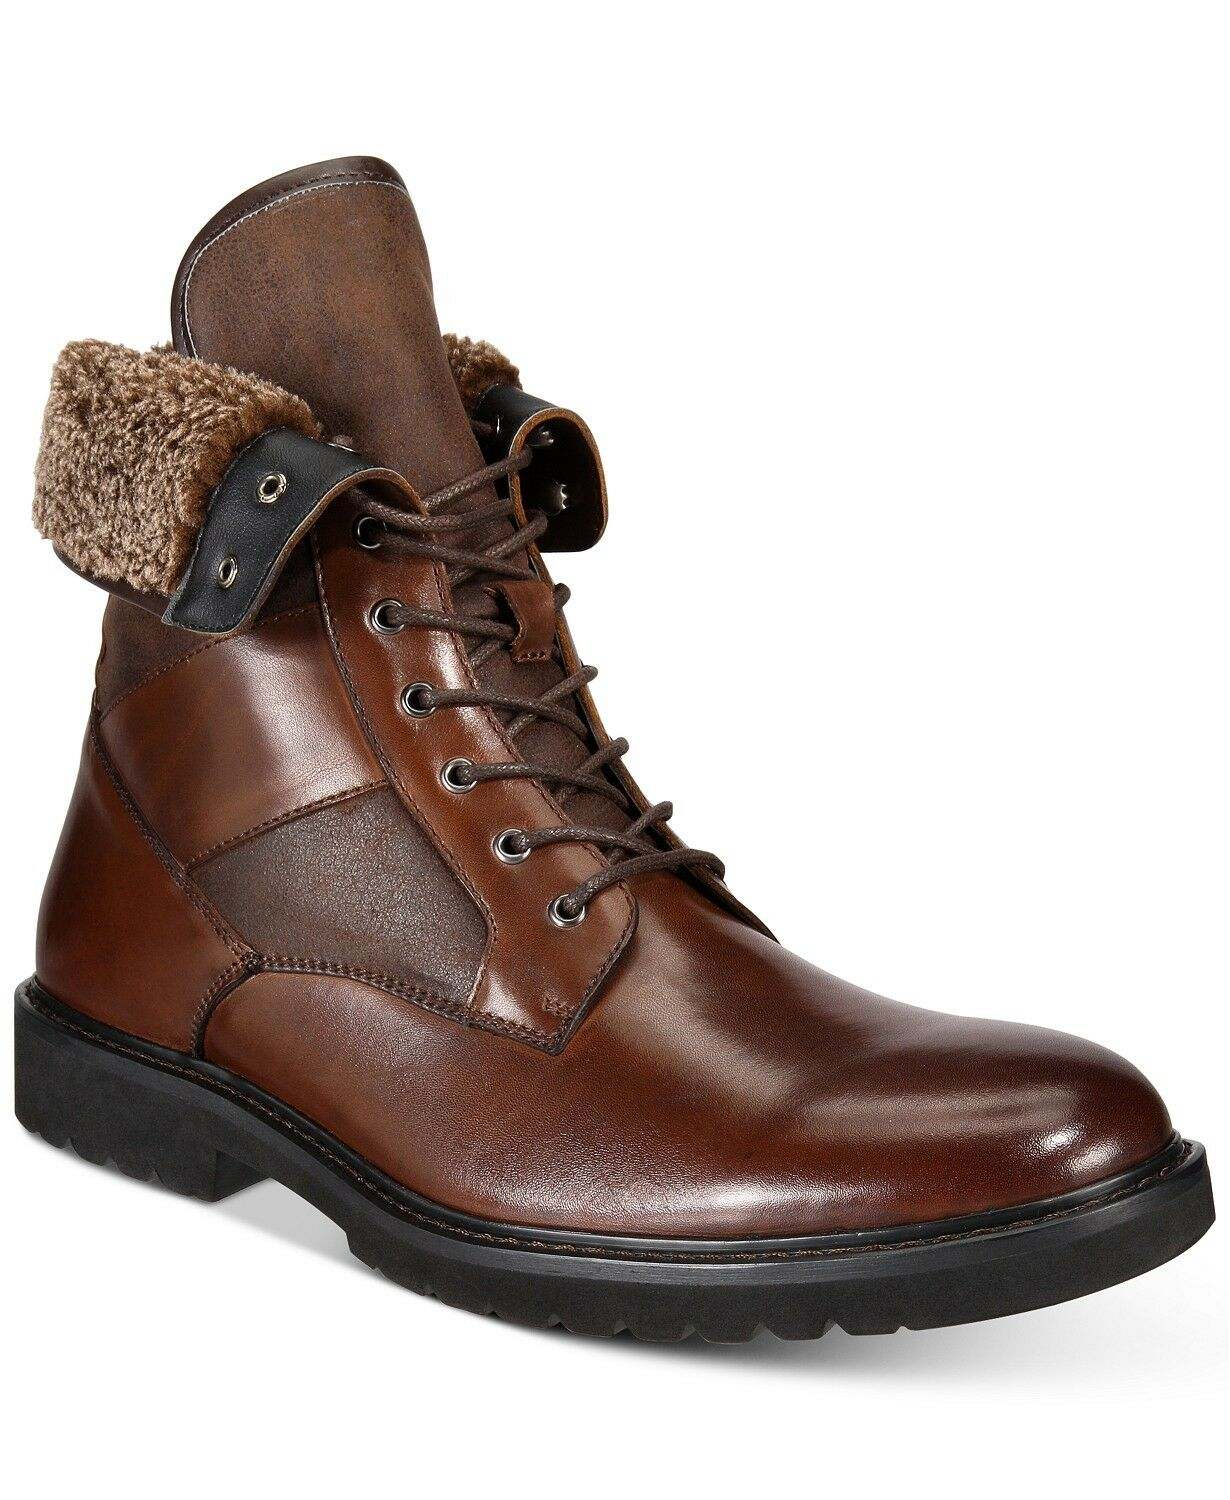 Bar III Men's LEATHER Dress Boots Griffin Lace-Up Boots BOOT Size 10.5 M